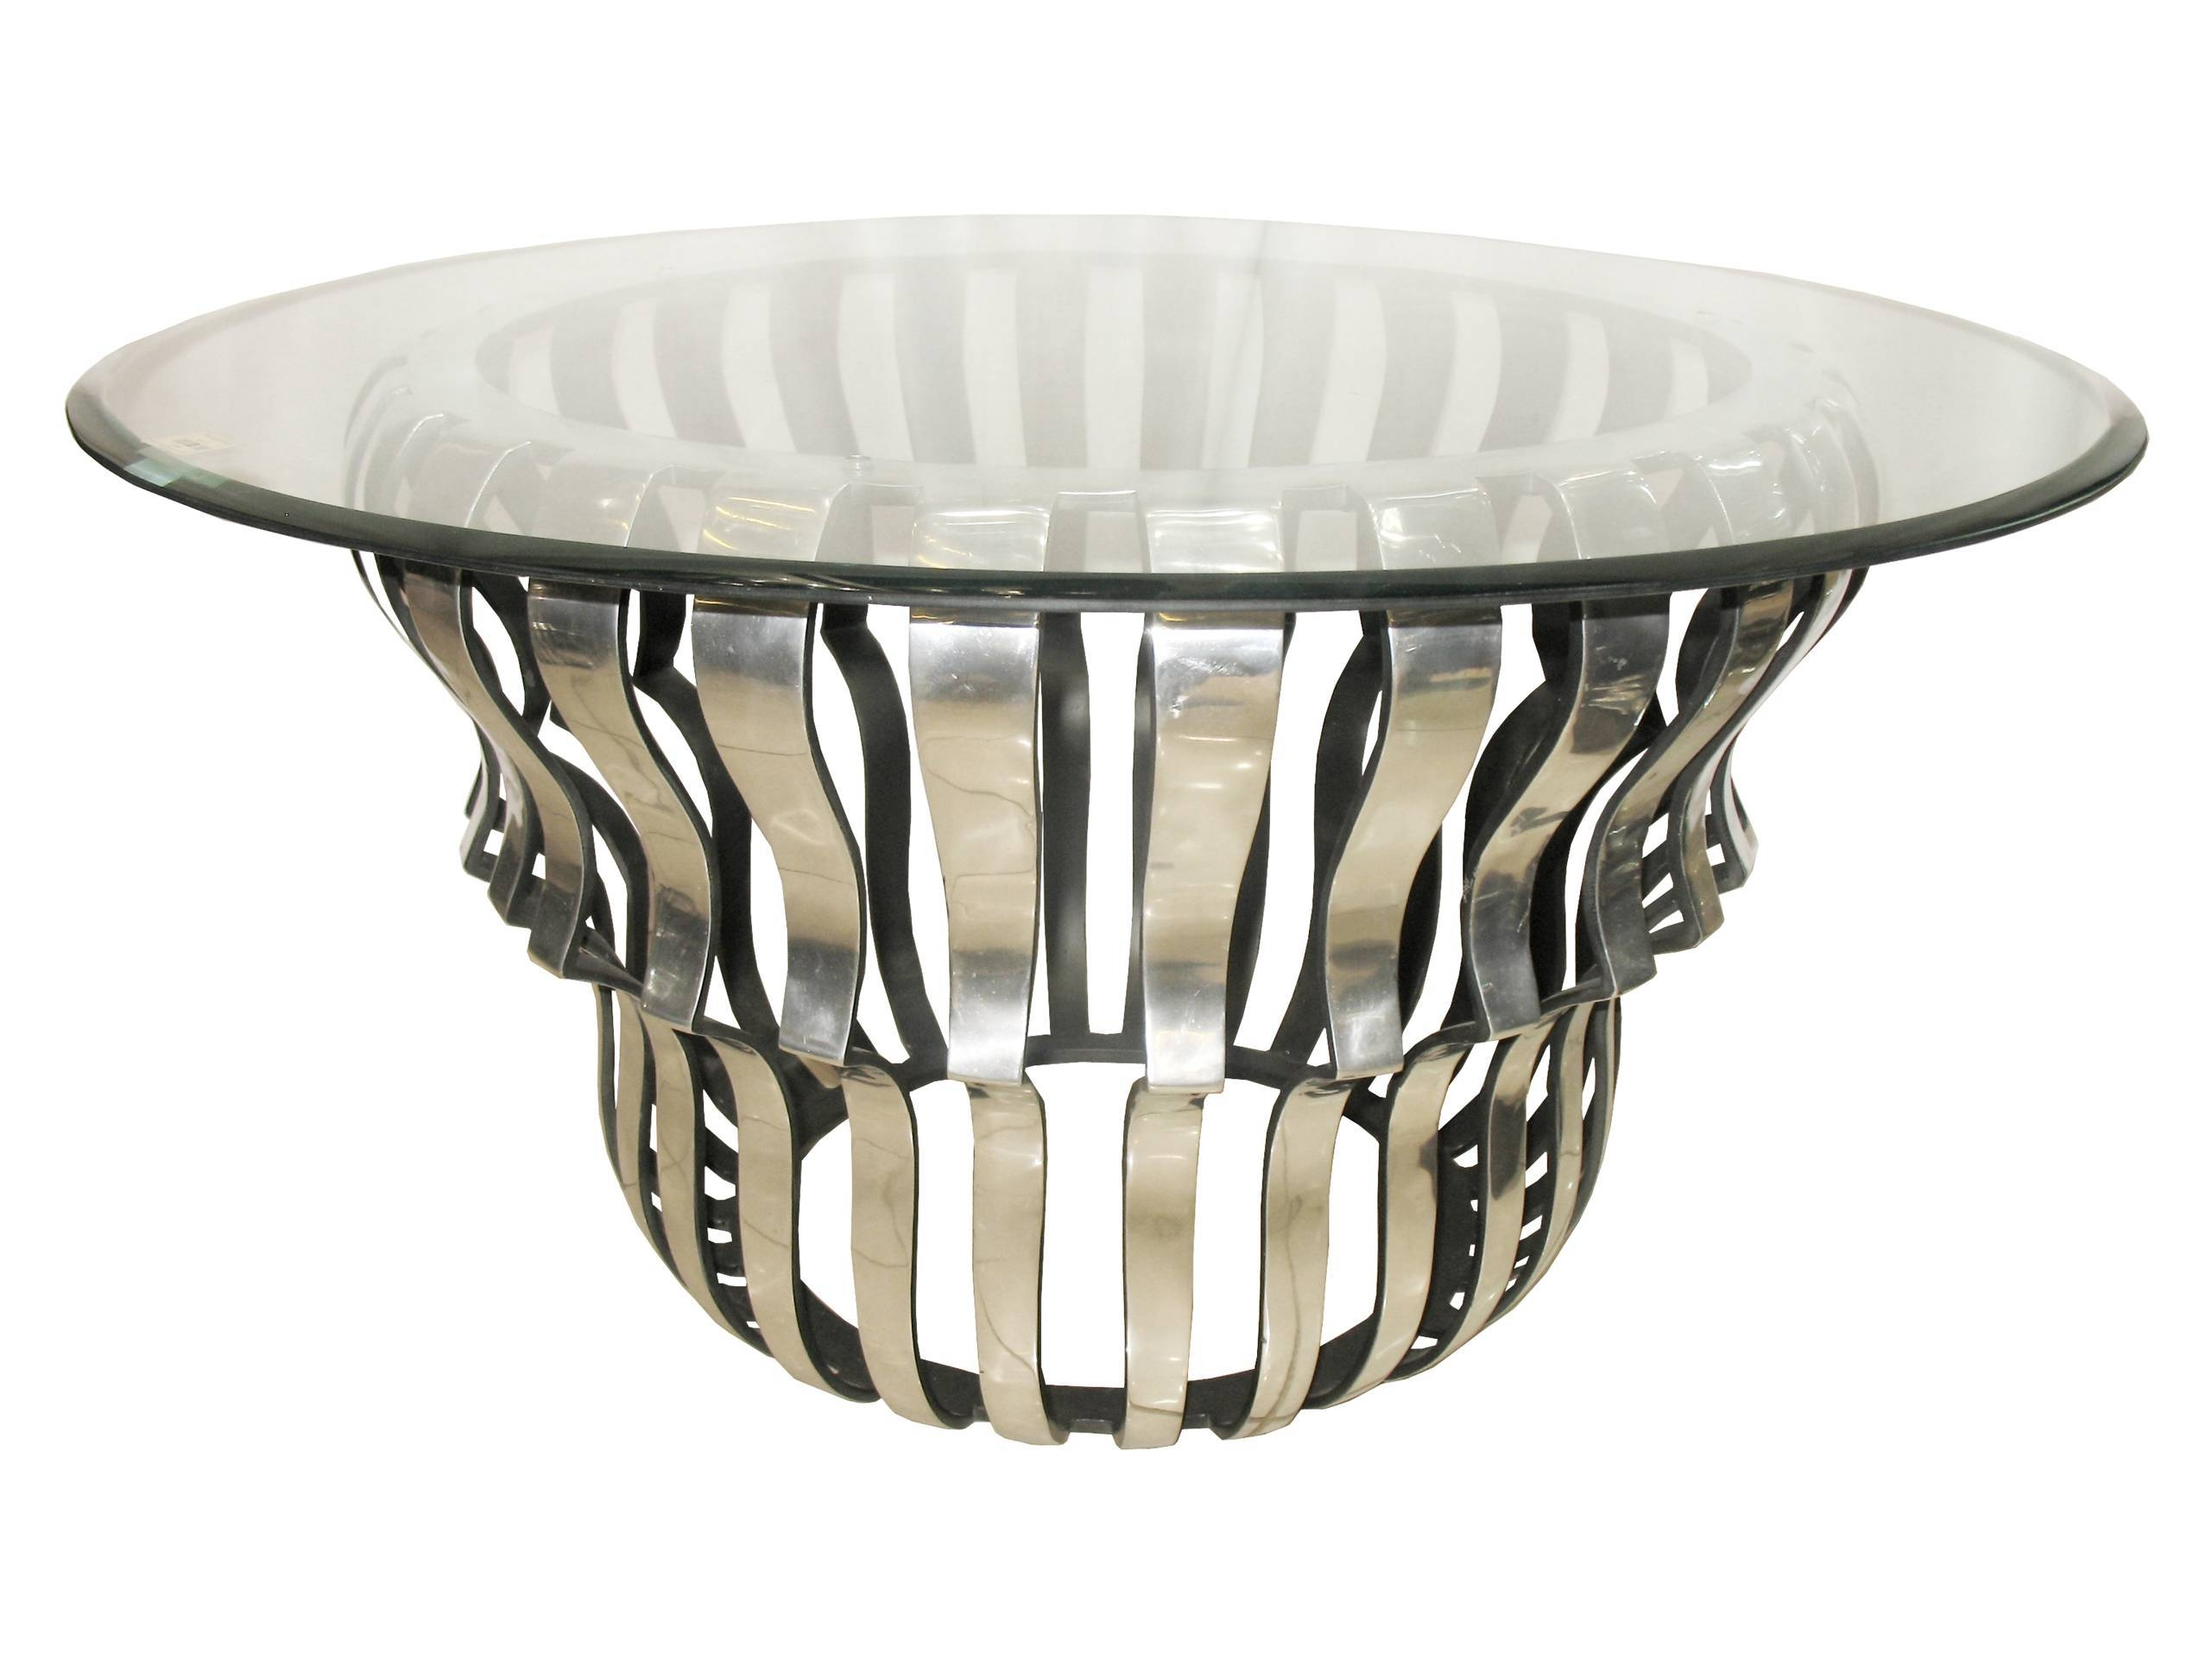 Aluminium & Glass Round Coffee Table | Wowpieces regarding Aluminium Coffee Tables (Image 1 of 30)